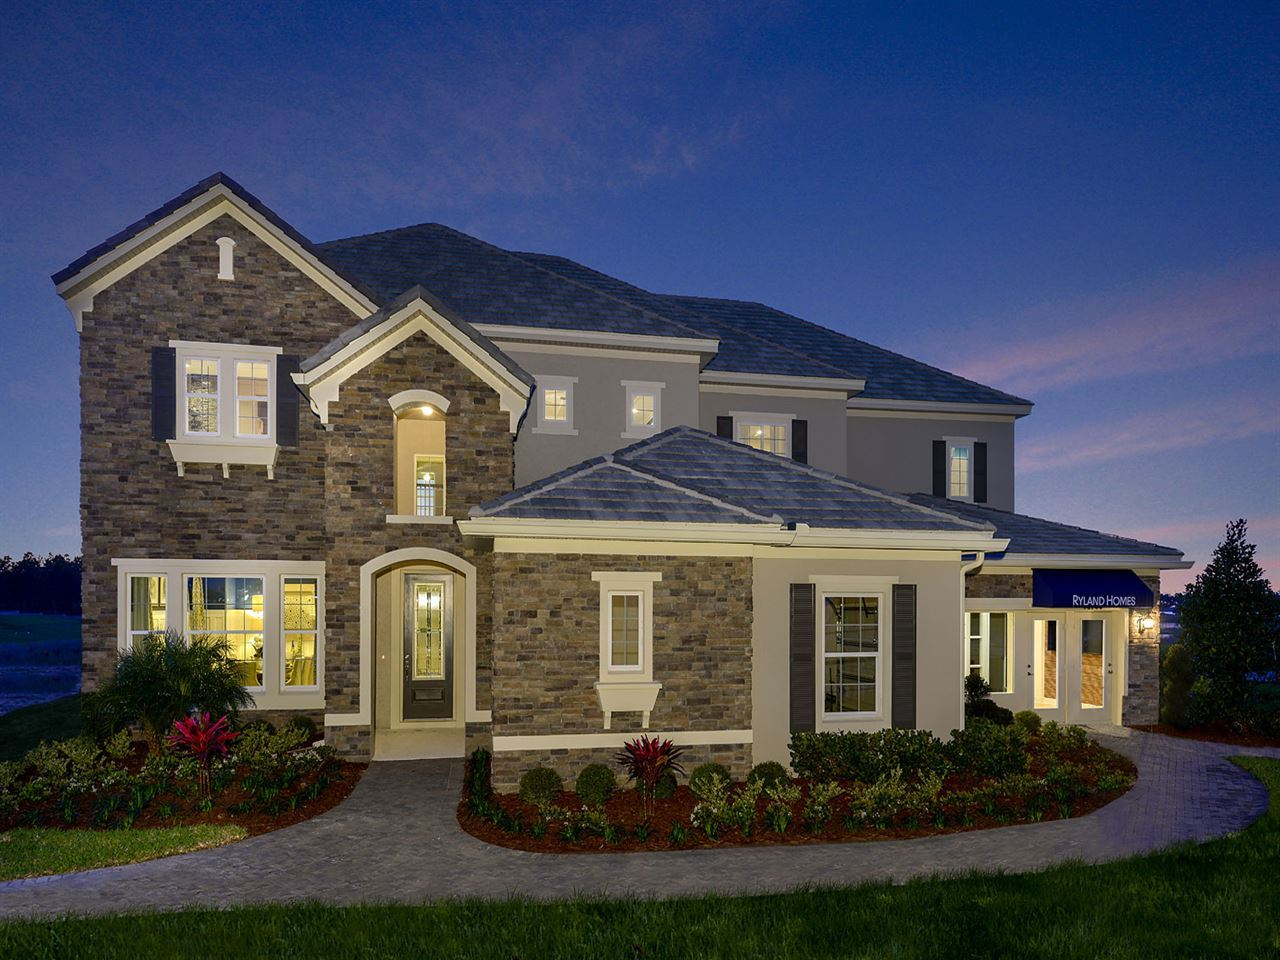 Hickory hammock 90 39 100 39 homesites new homes in winter for Ryland homes